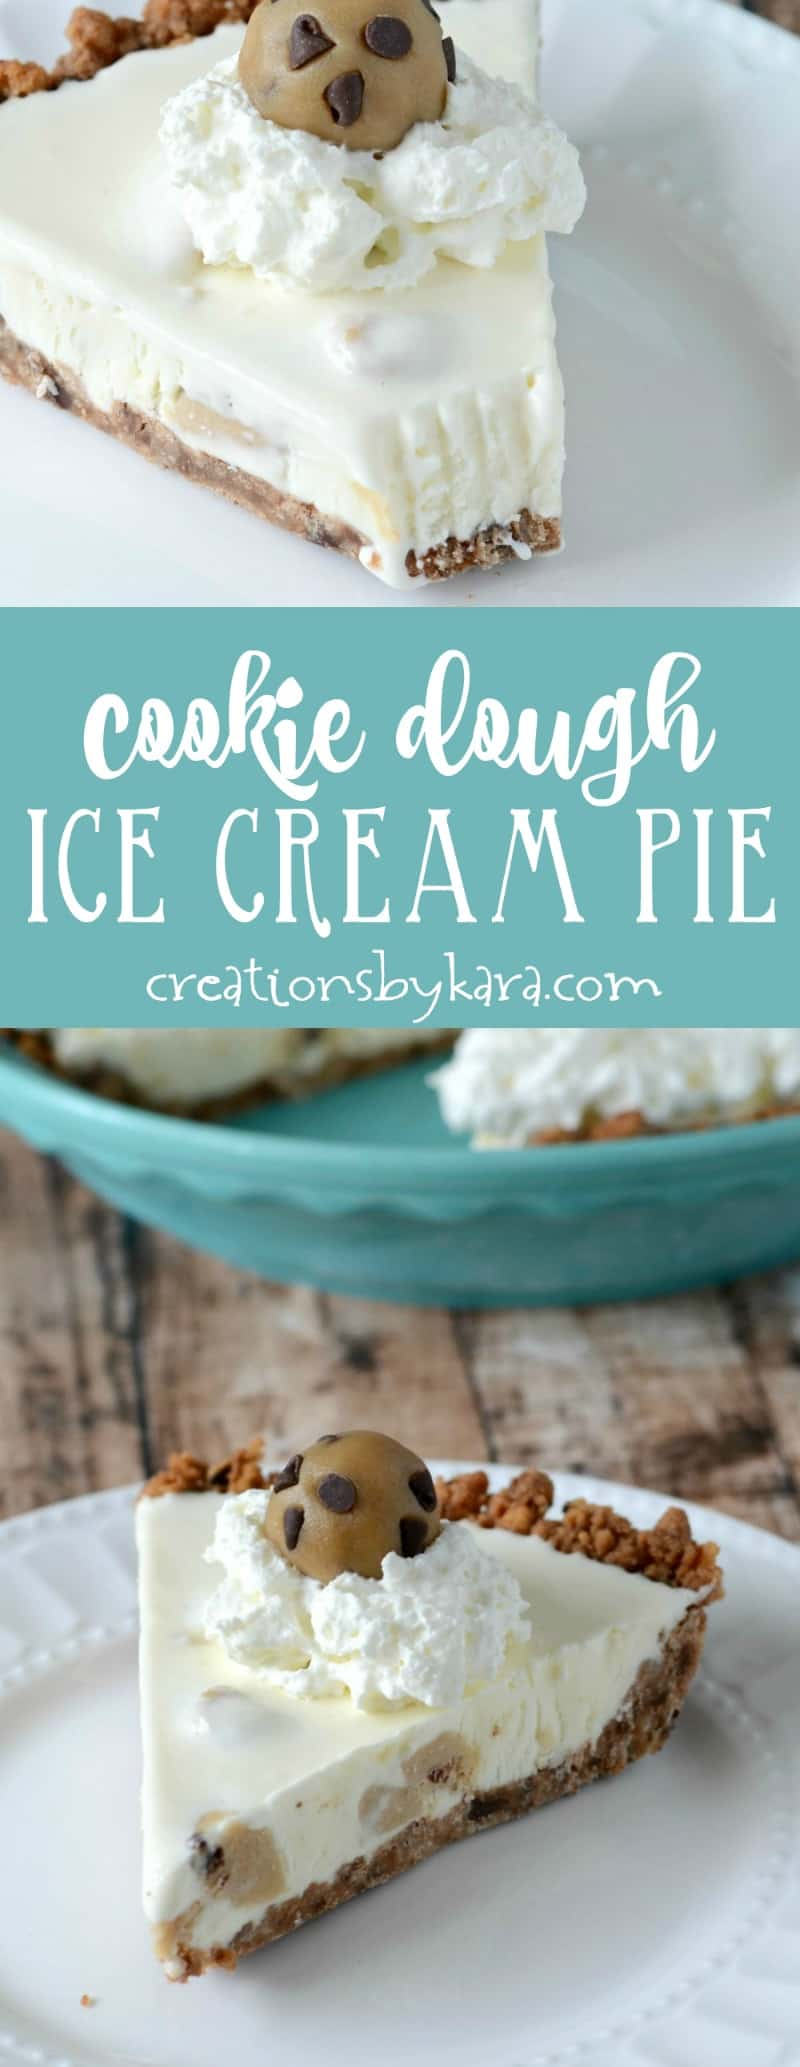 Chocolate Chip Cookie Dough Ice Cream Pie - Creations by Kara